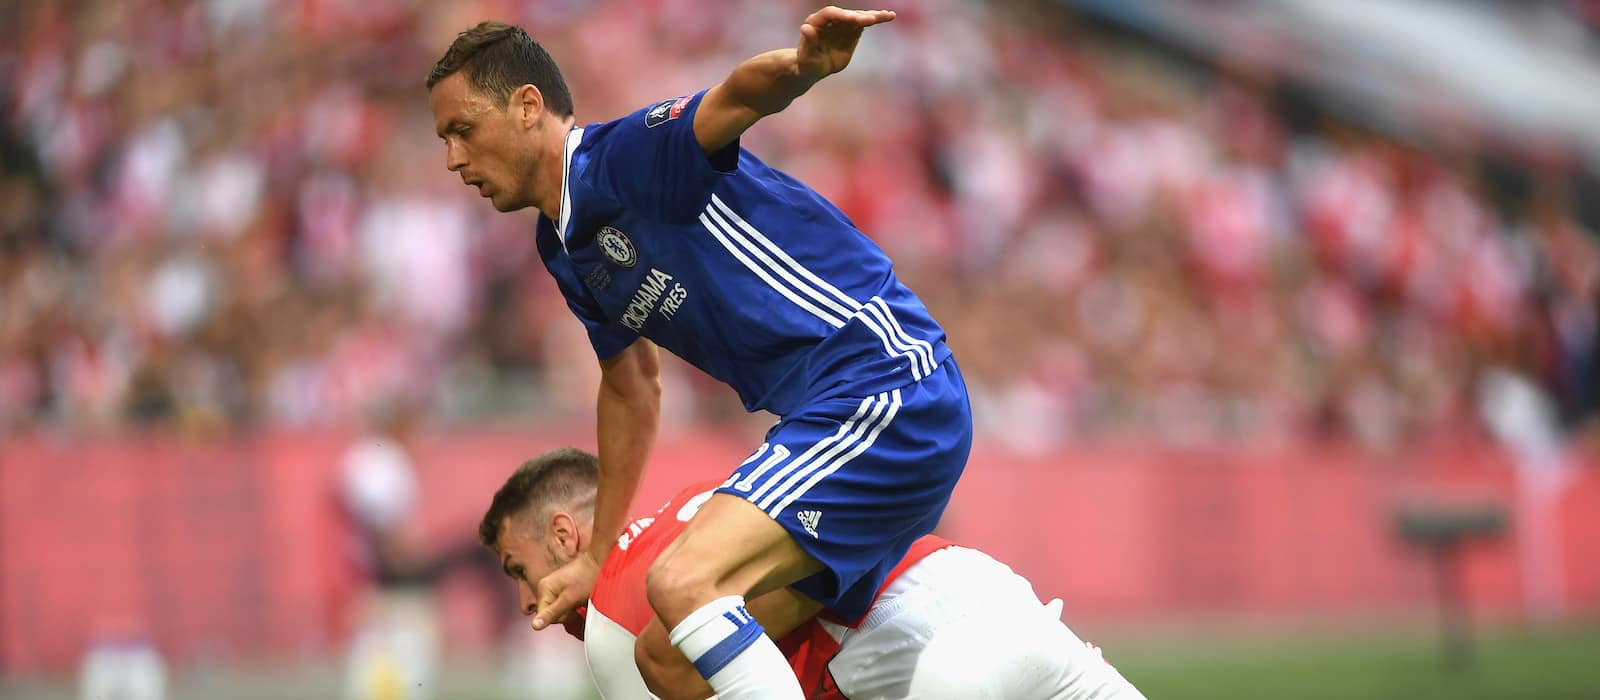 Gianluca Di Marzio: Juventus make Manchester United target Nemanja Matic top priority